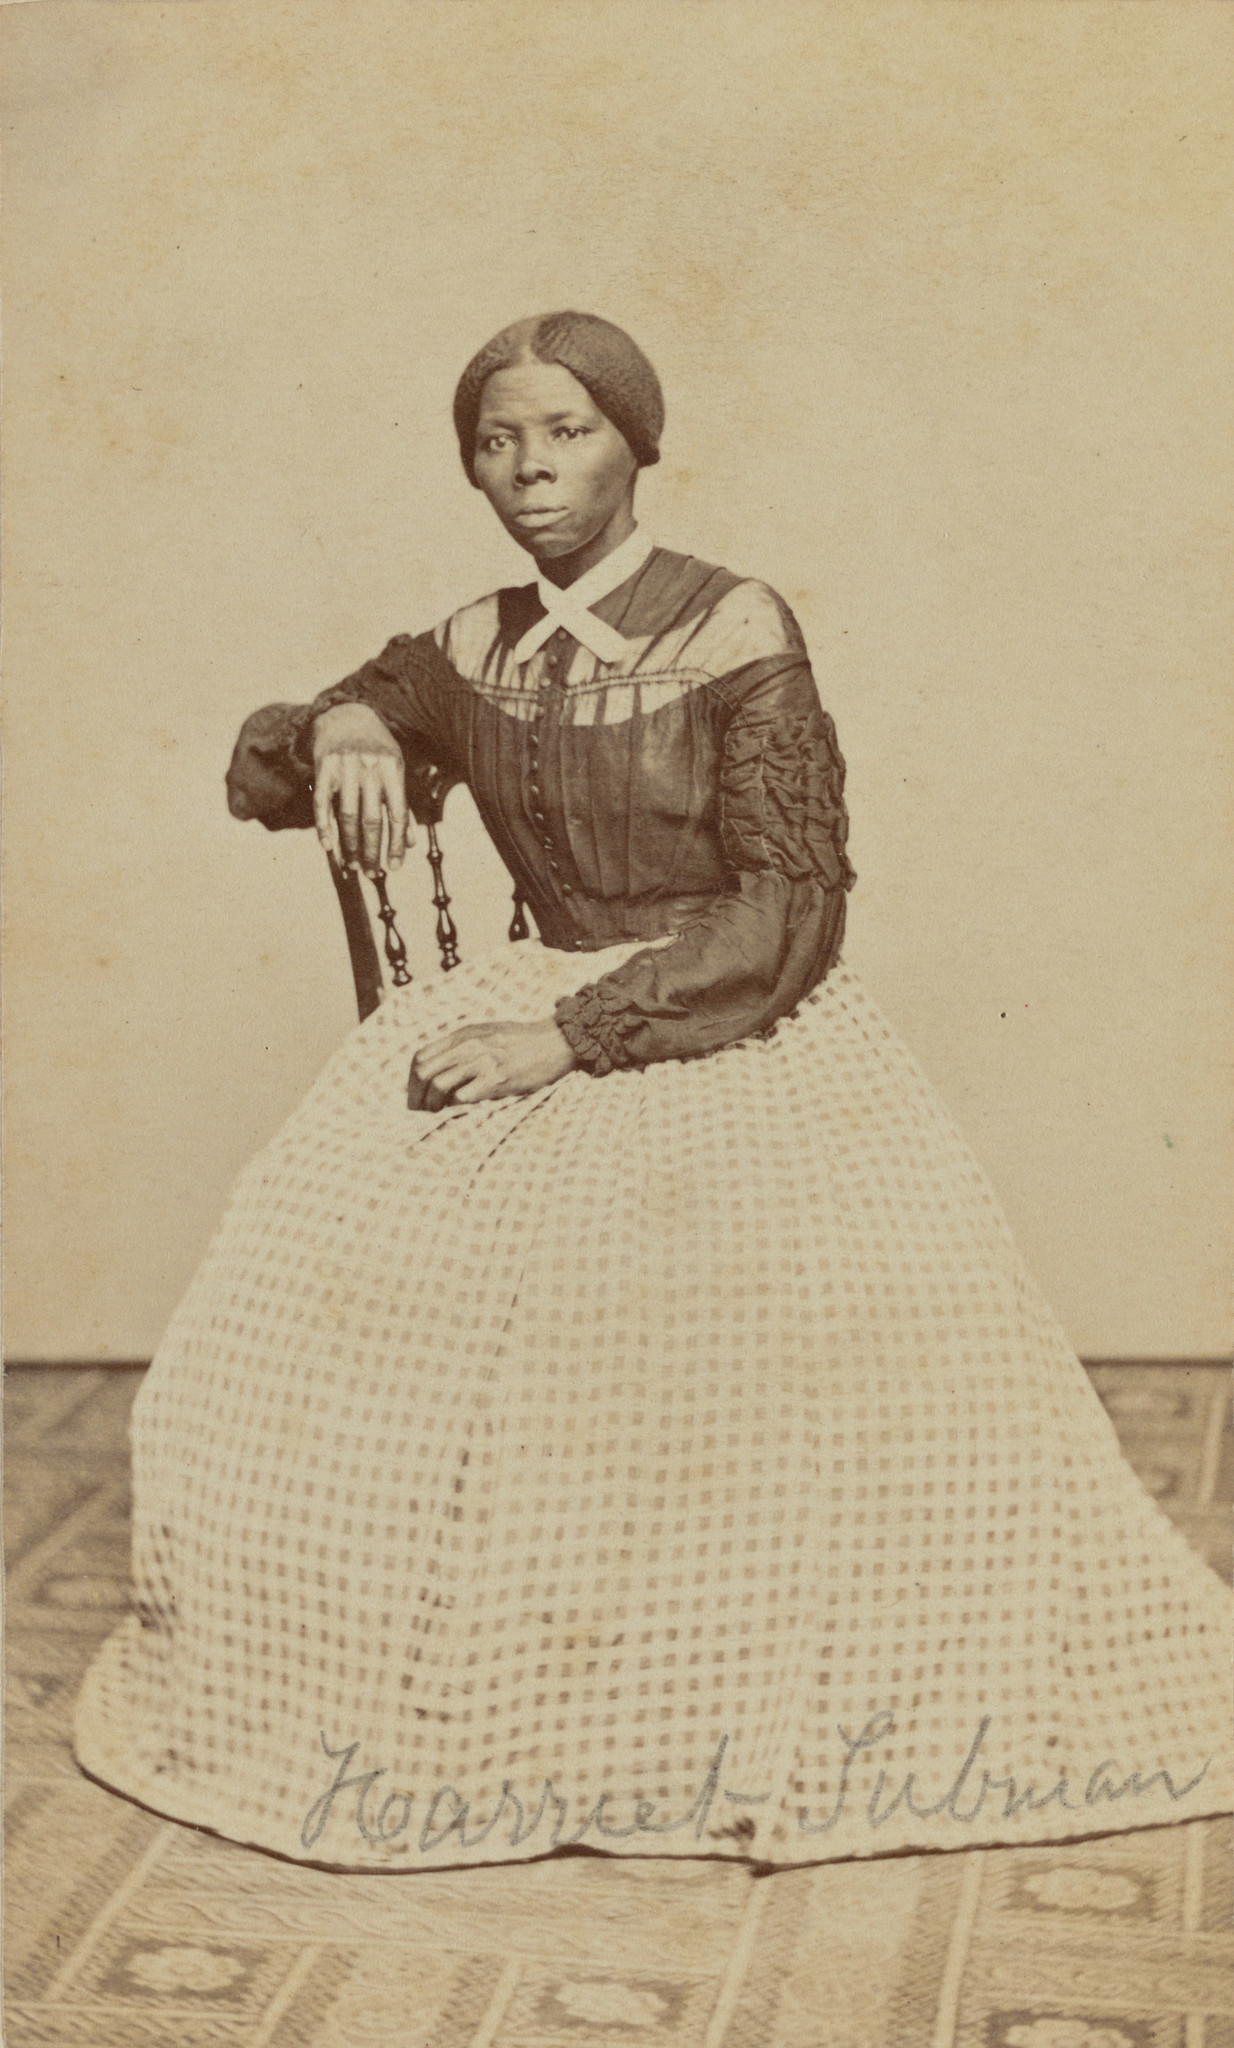 Benjamin F. Powelson. Harriet Tubman; a hitherto unknown carte-de-visite in the Emily Howland photog